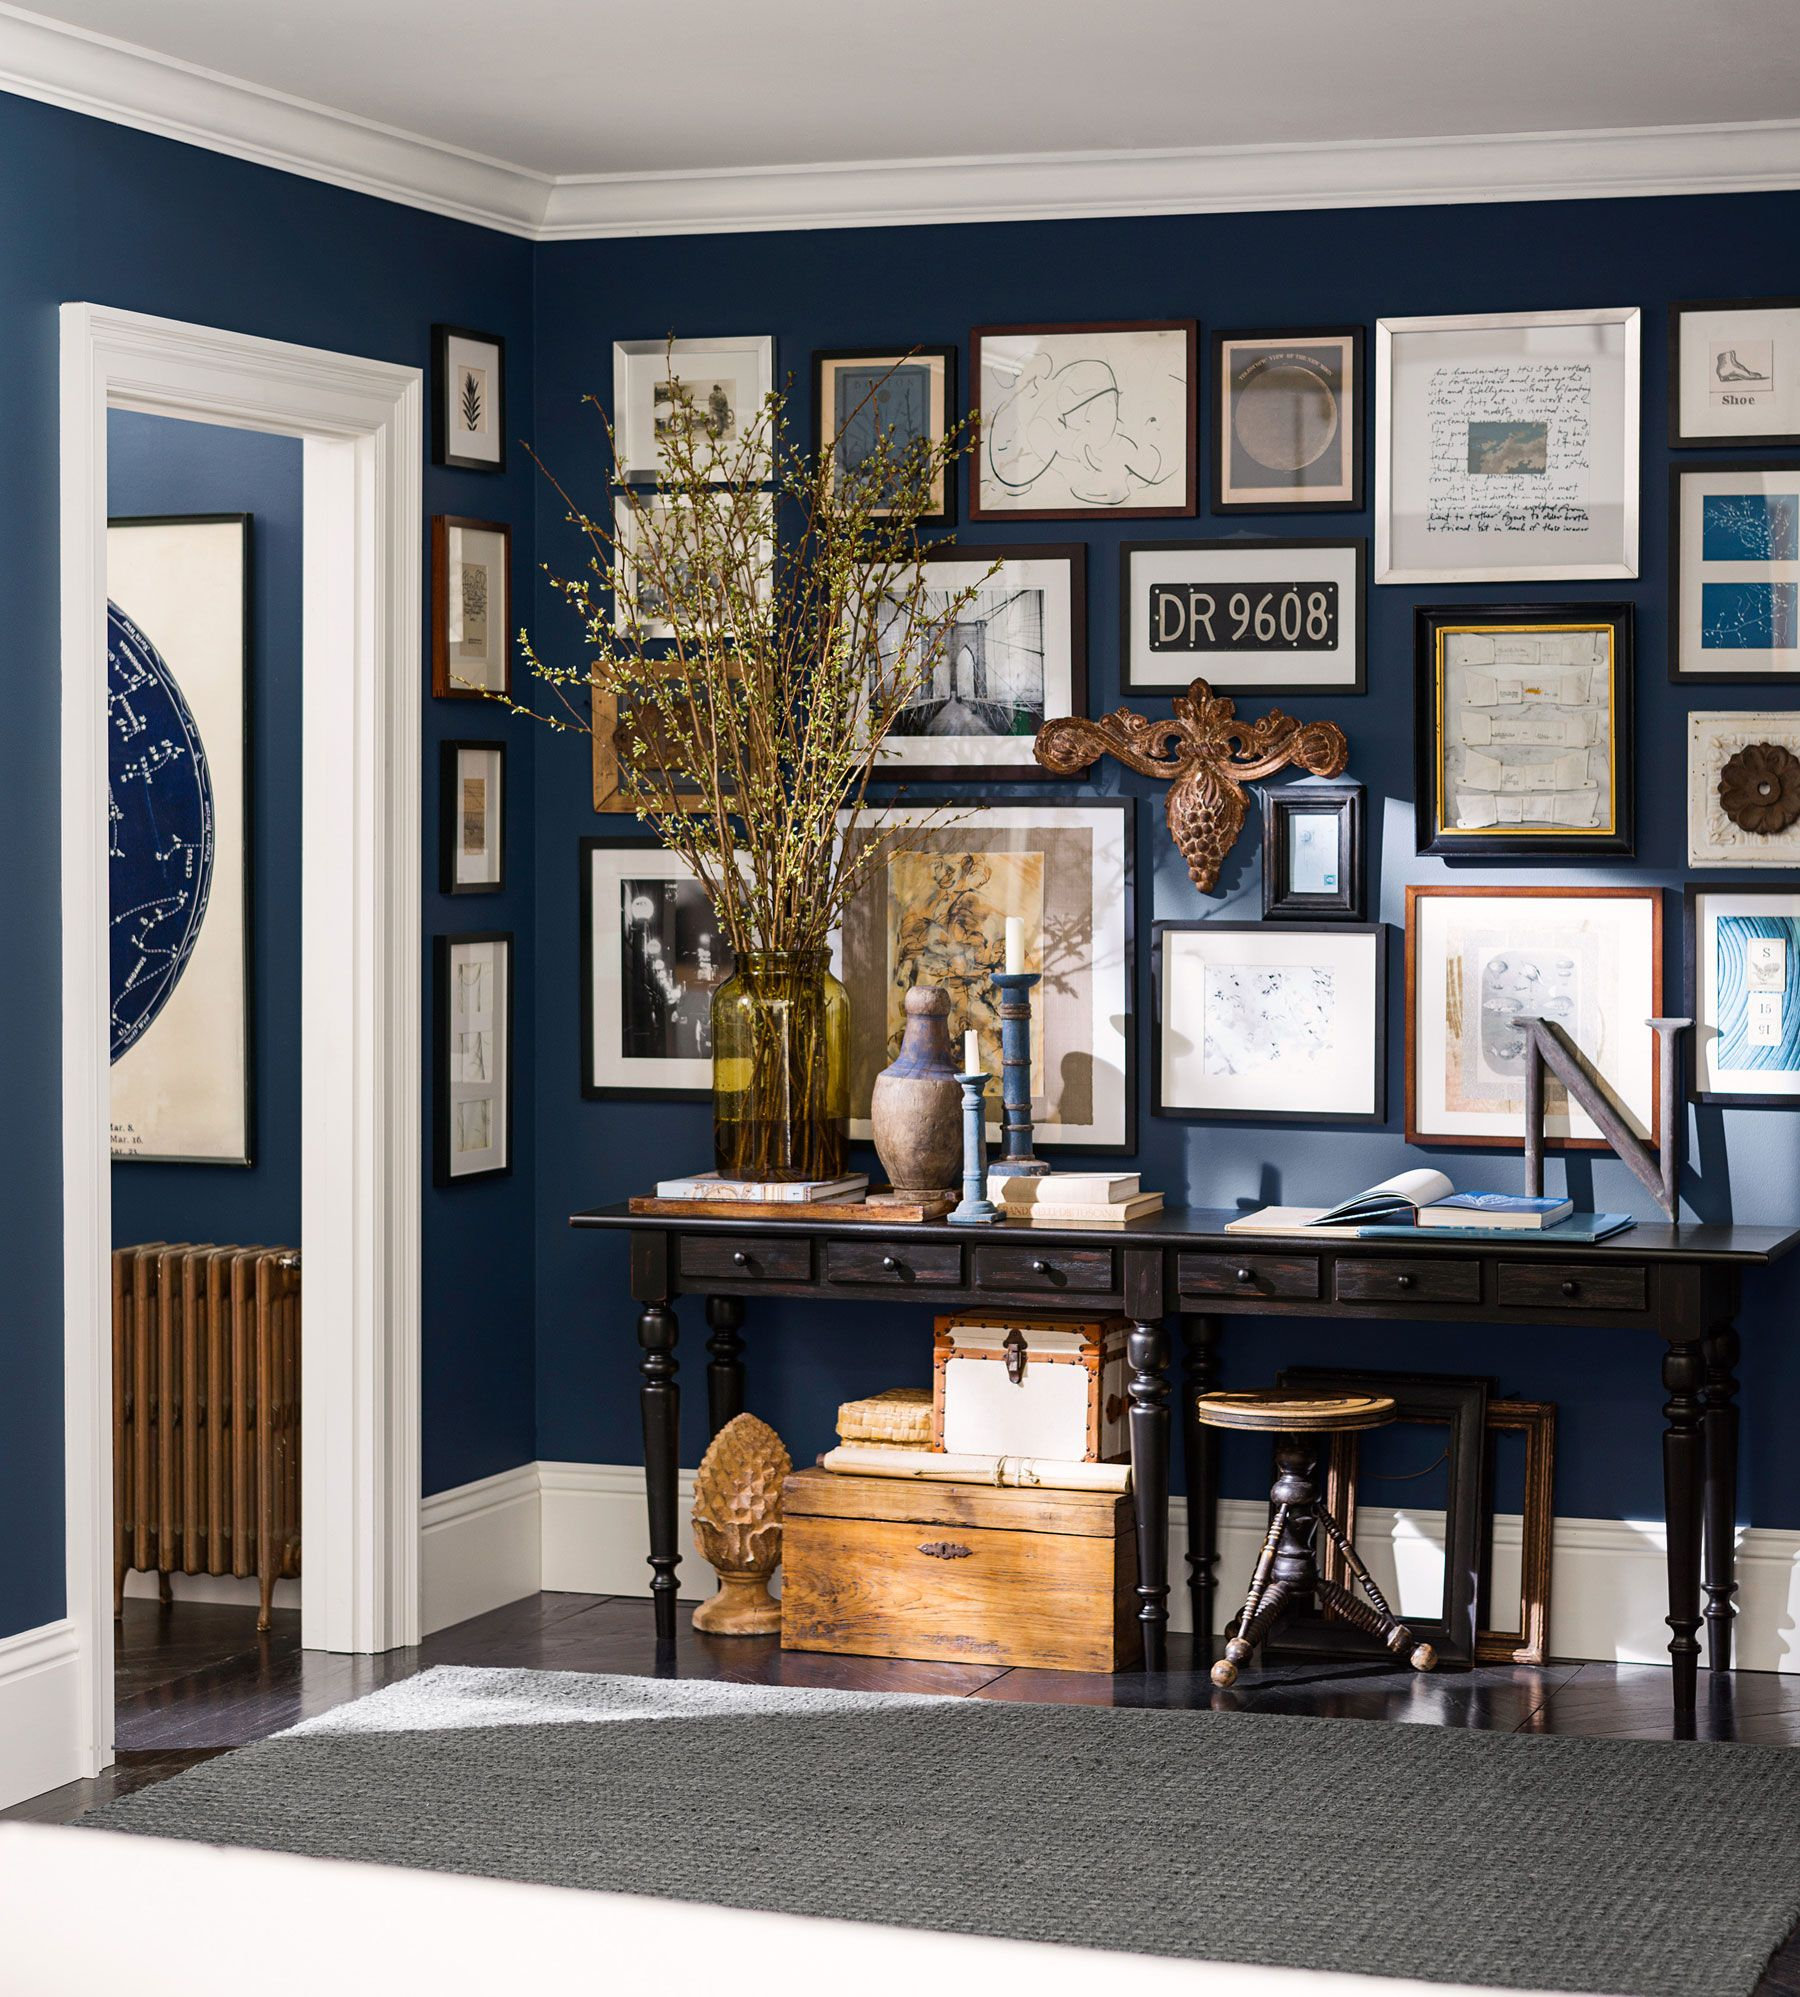 Pottery Barn Living Room Paint Colors Entry Featuring Paint Color Naval Sw 6244 From The Pottery Barn